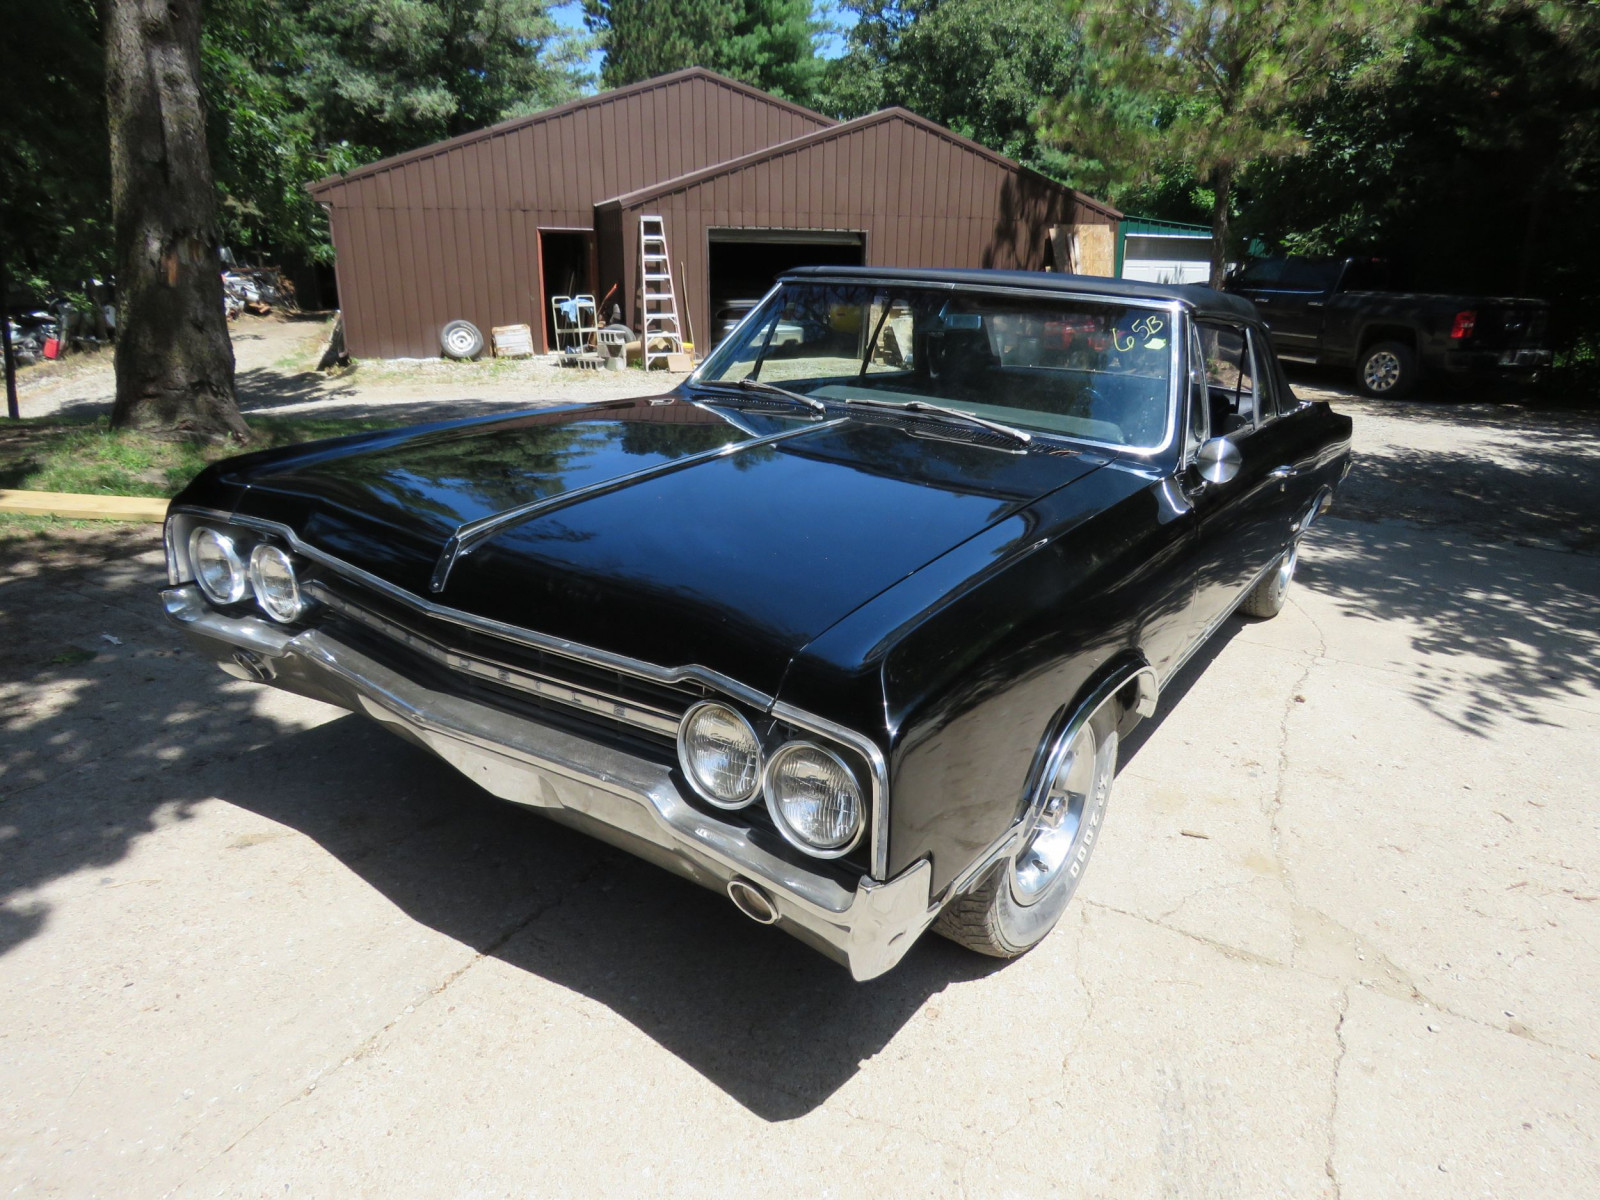 1965 Oldsmobile Cutlass Convertible - Image 3